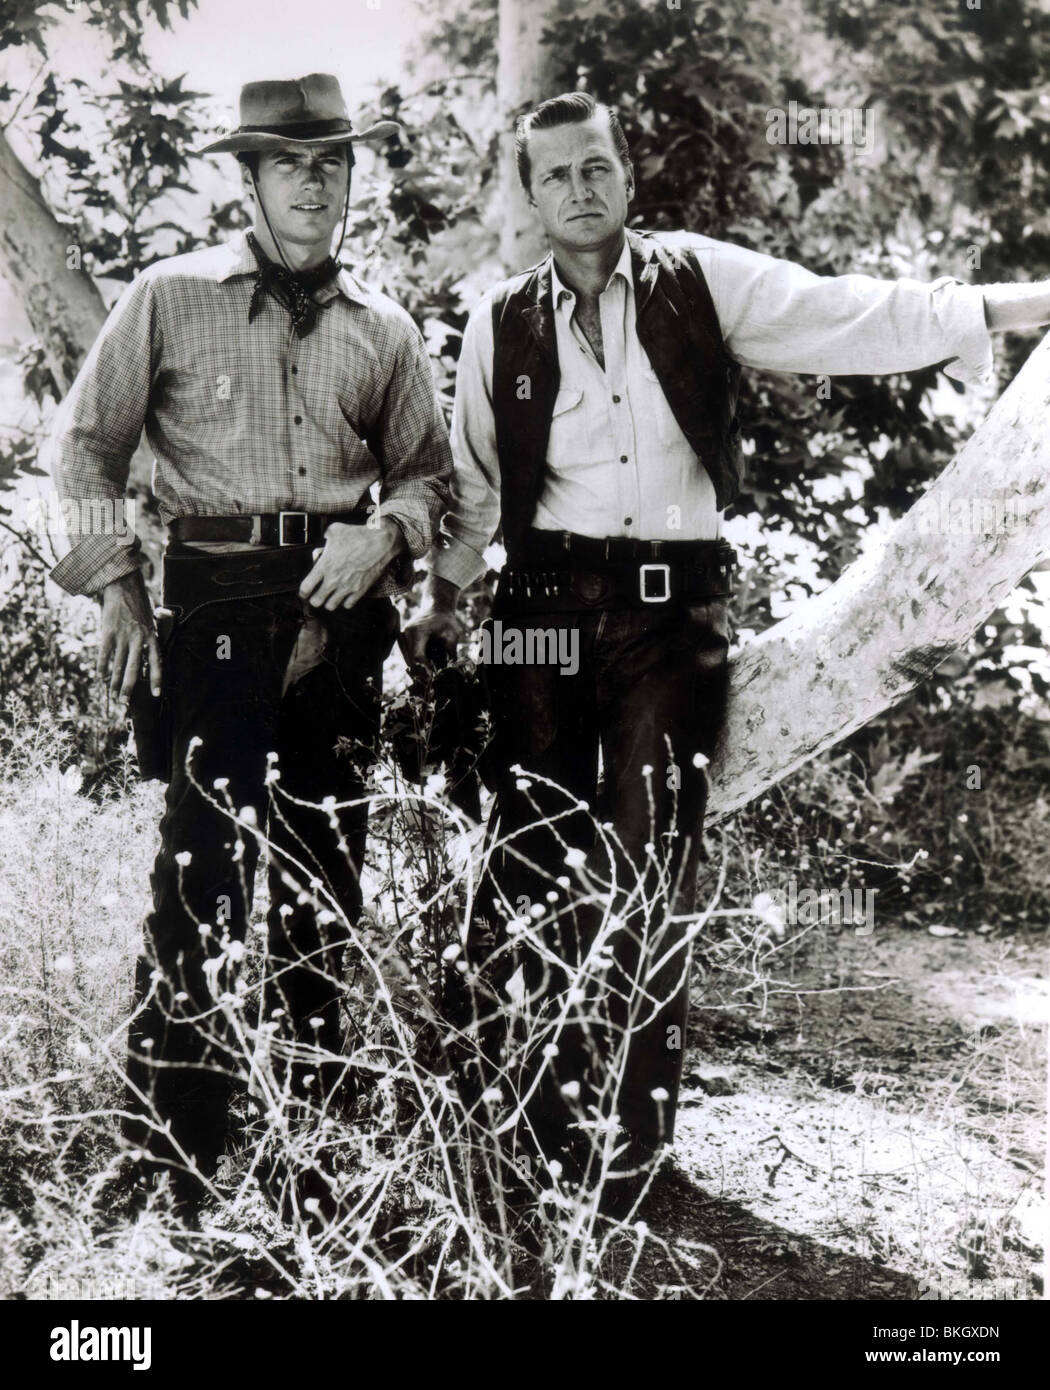 RAWHIDE (TV) CLINT EASTWOOD, ERIC FLEMING RWH 020P - Stock Image